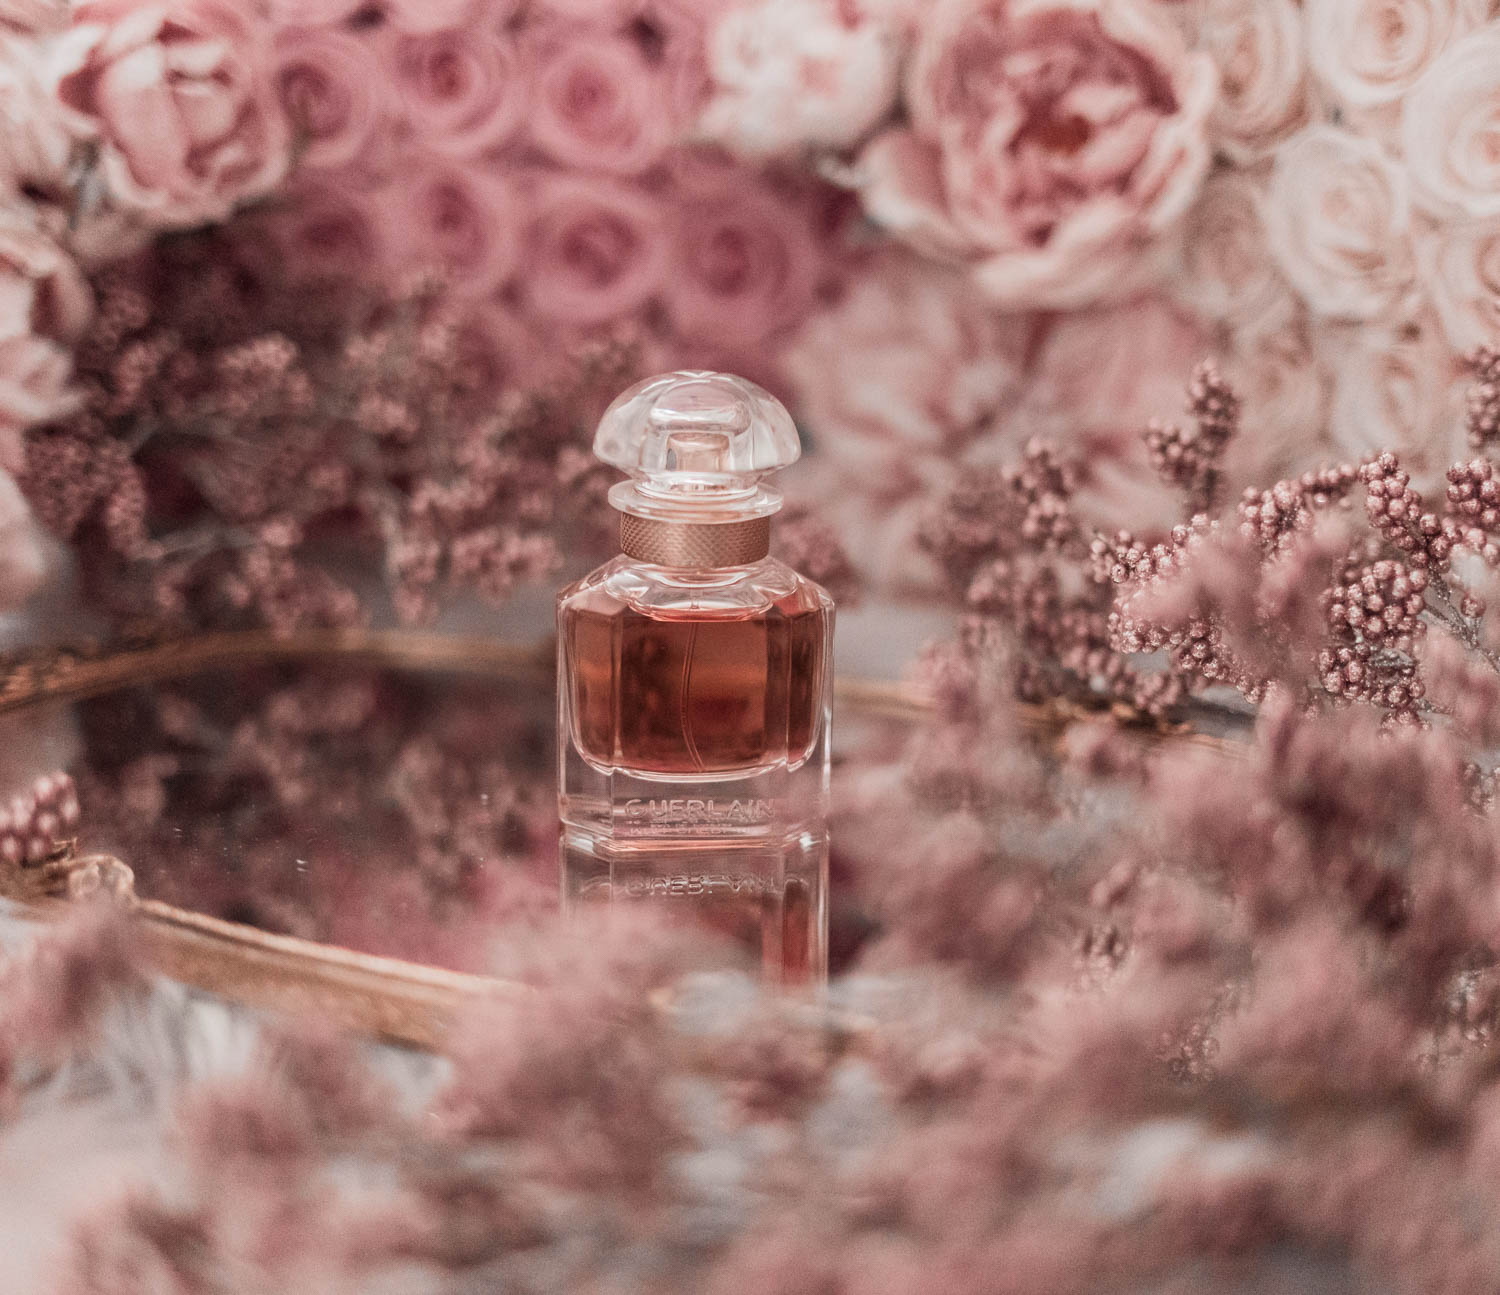 Feminine fashion blogger Elizabeth Hugen of Lizzie in Lace shares the best feminine perfumes and her girly fragrance collection including Guerlain Mon Guerlain